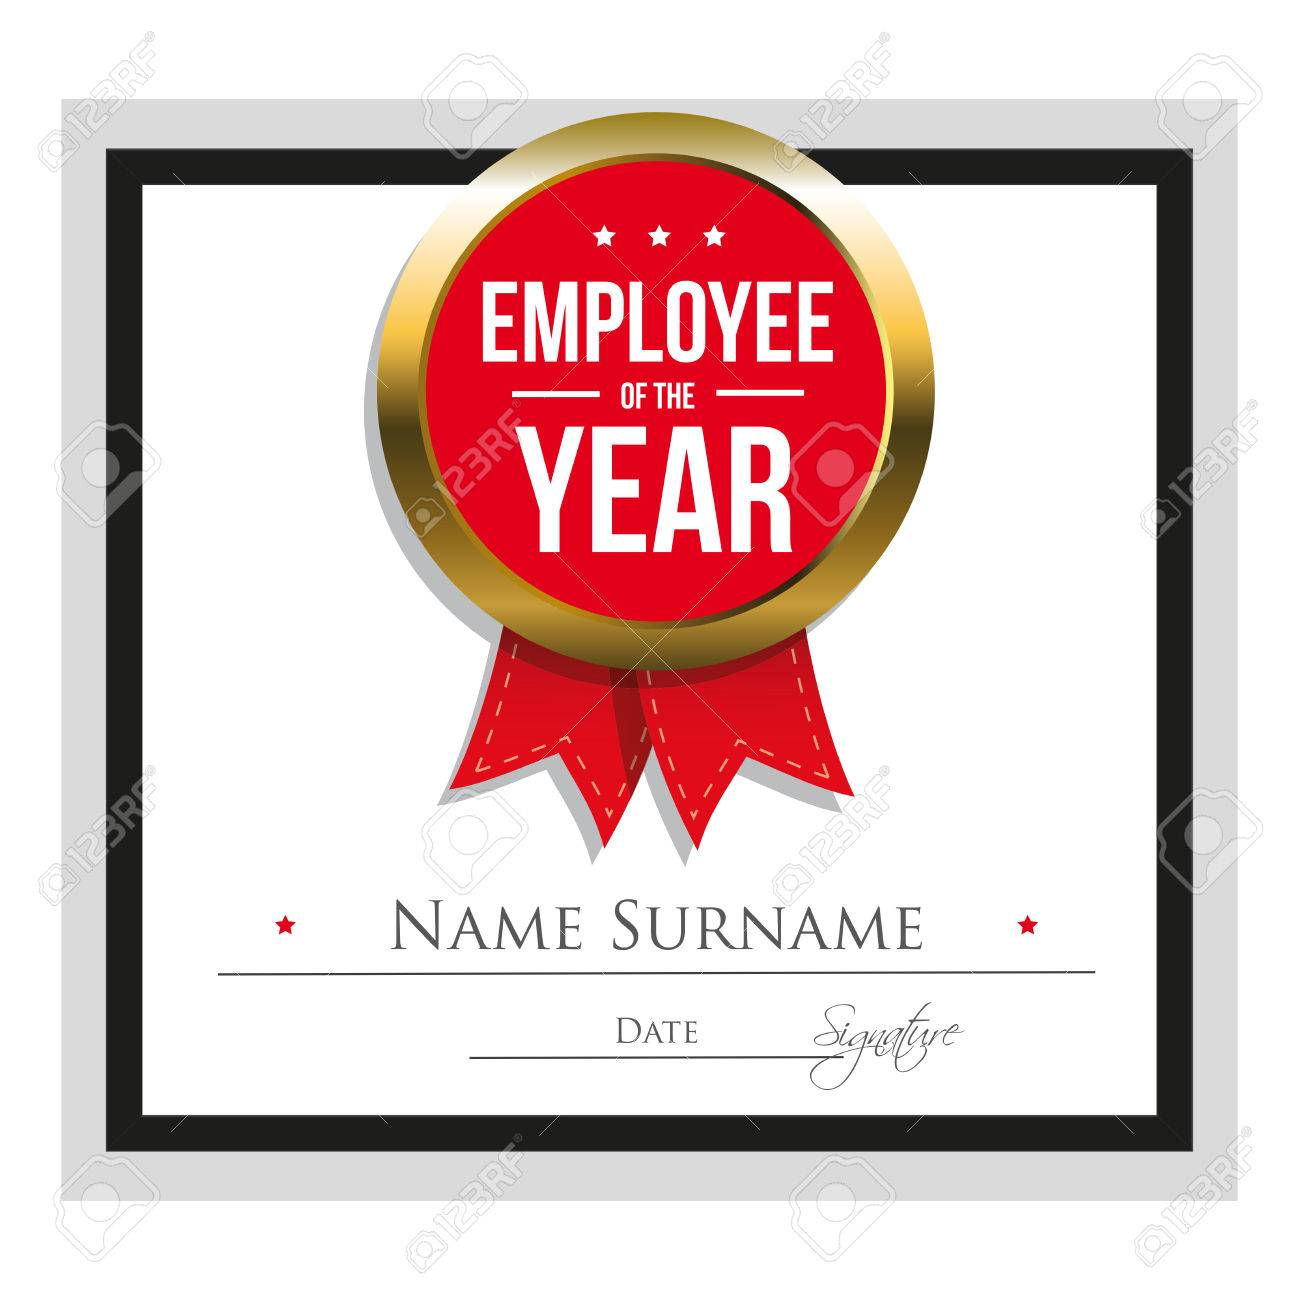 Employee Of The Year Certificate Template Royalty Free Cliparts ...